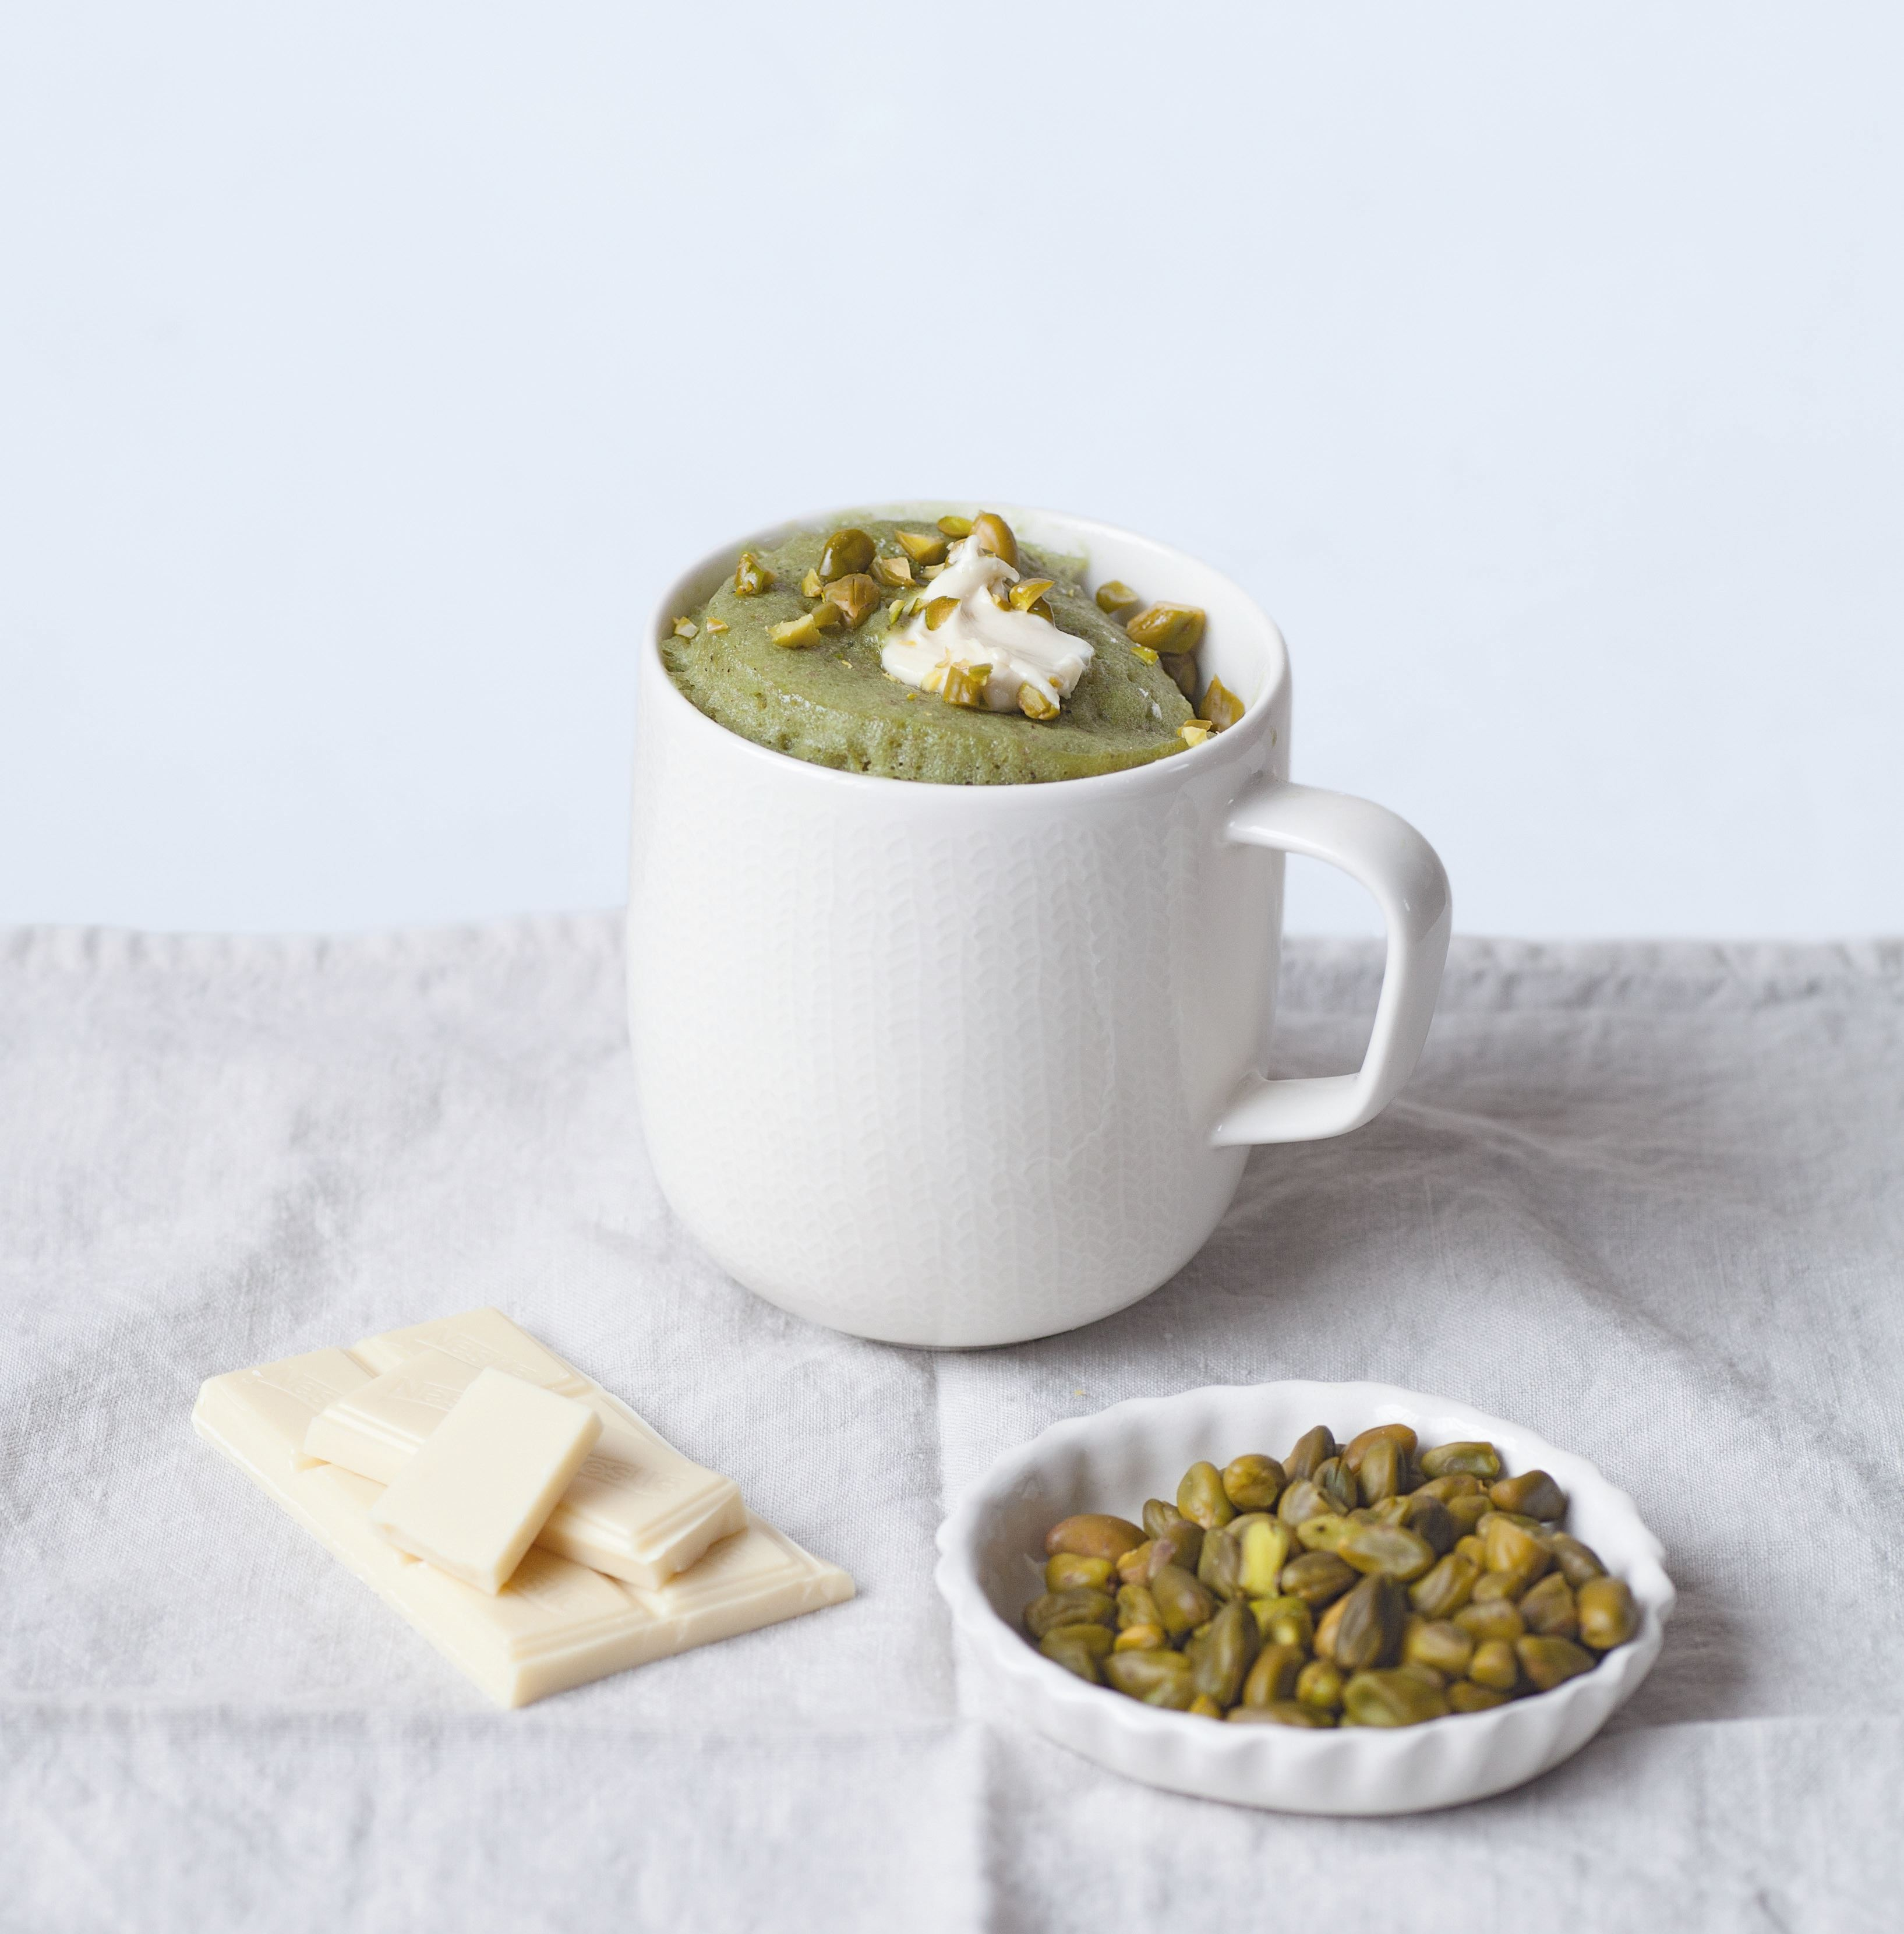 Pistachio mug cake with a white chocolate middle